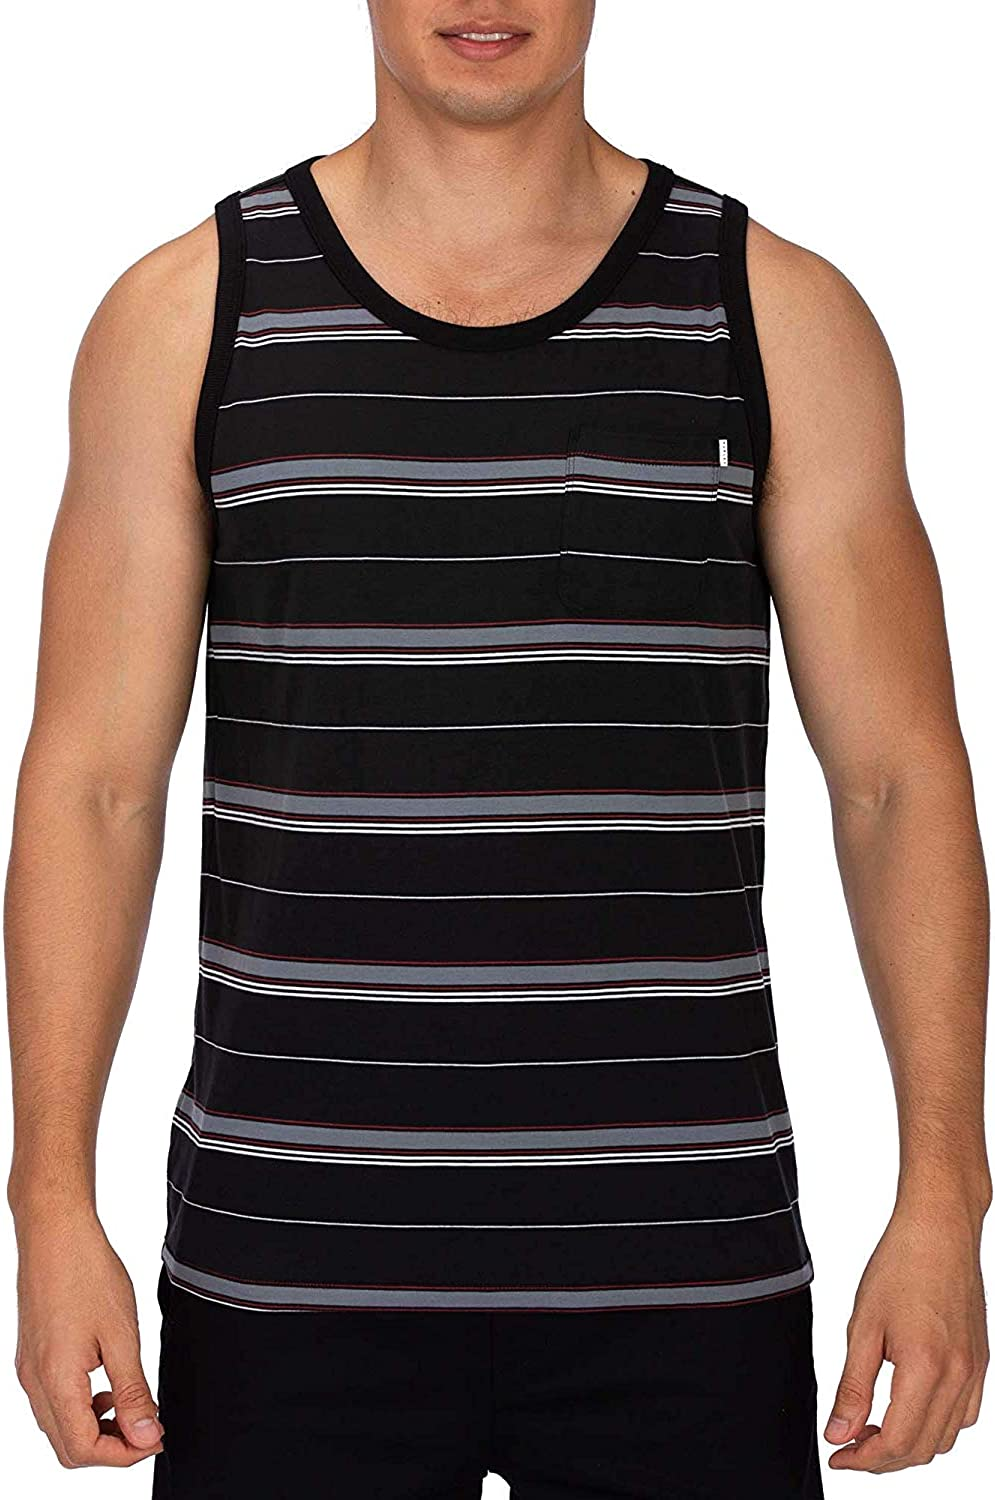 Hurley Mens One /& Only Graphic Tank Top